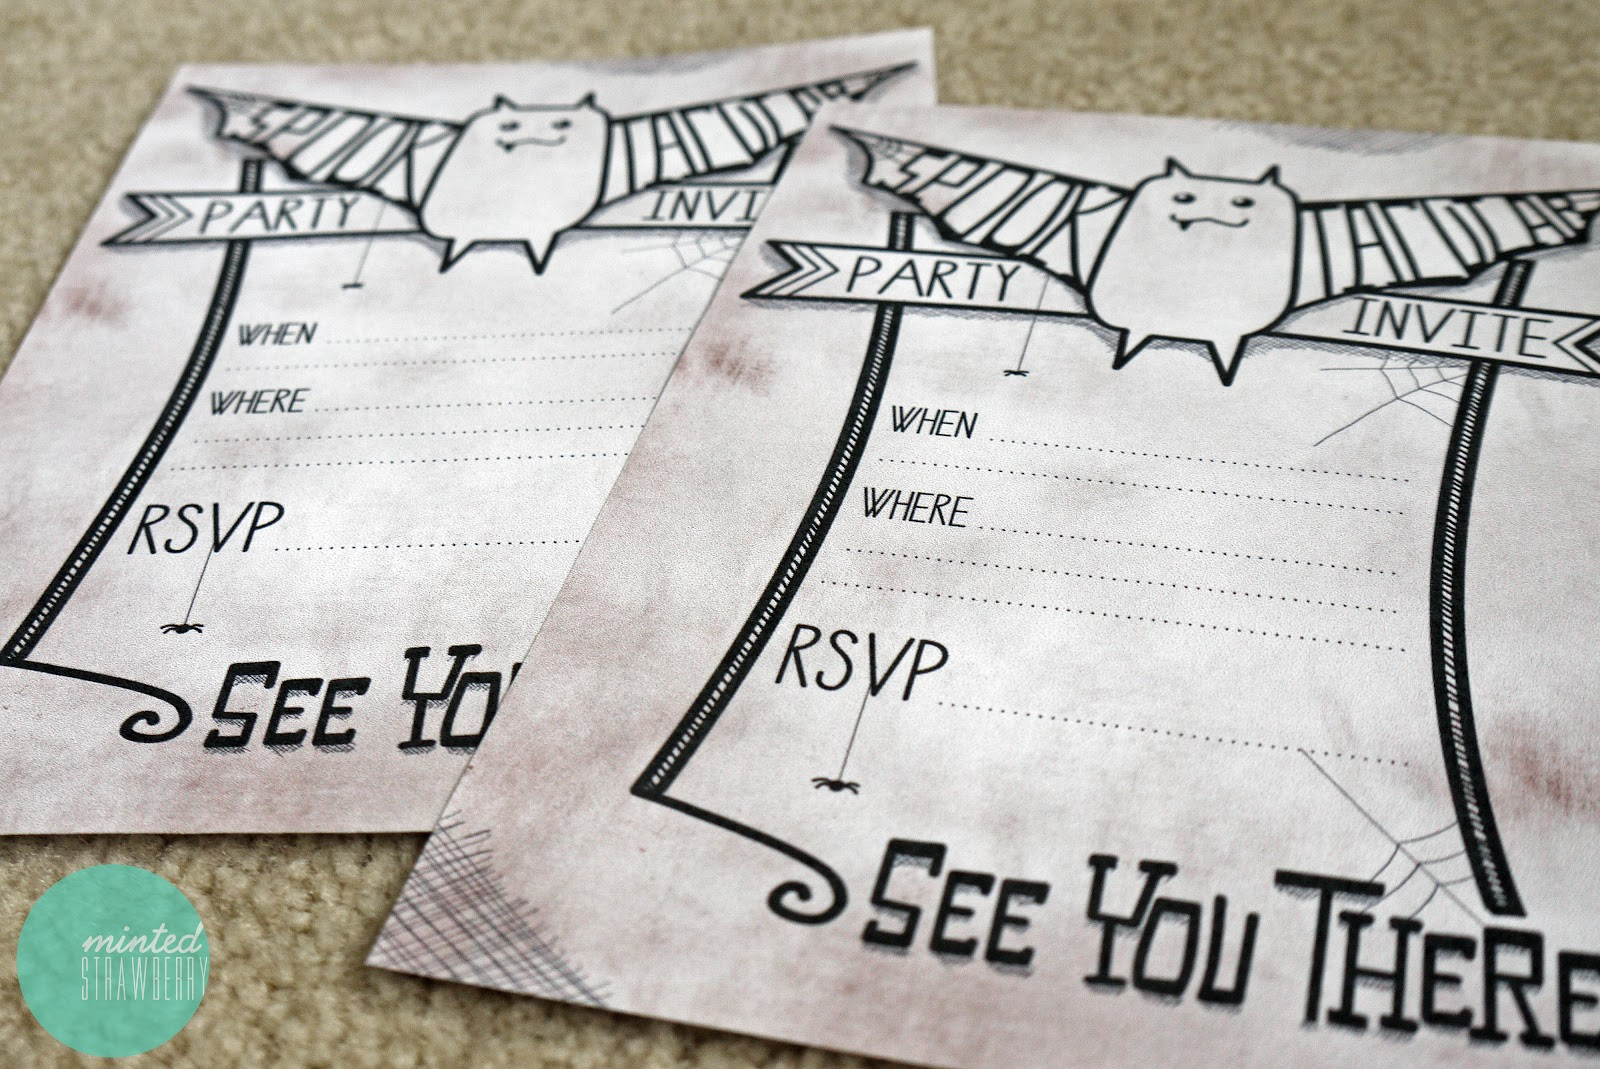 cute halloween party invites printable free - Halloween Birthday Invitations Printable